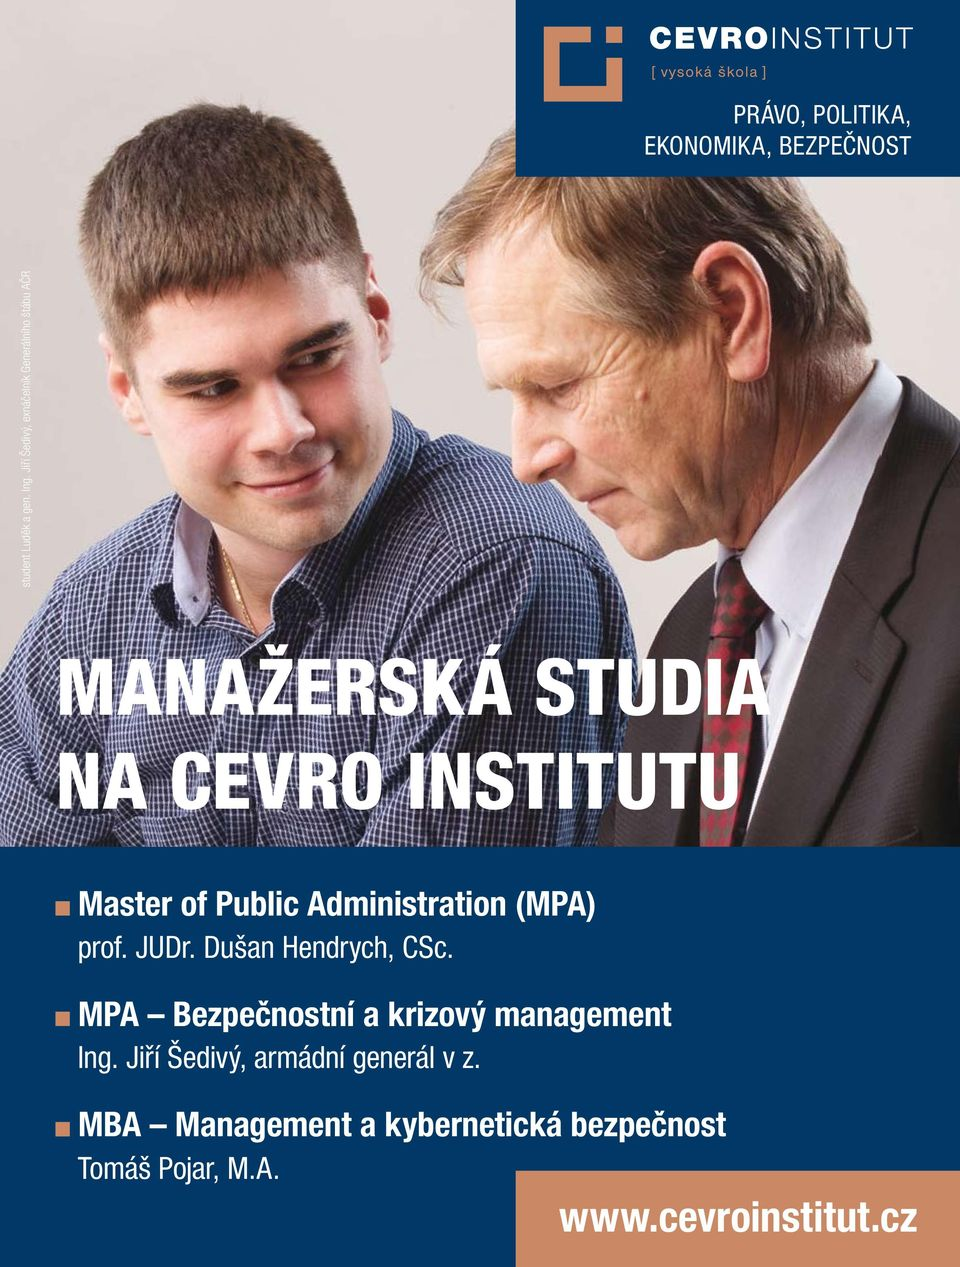 Public Administration (MPA) prof. JUDr. Dušan Hendrych, CSc.